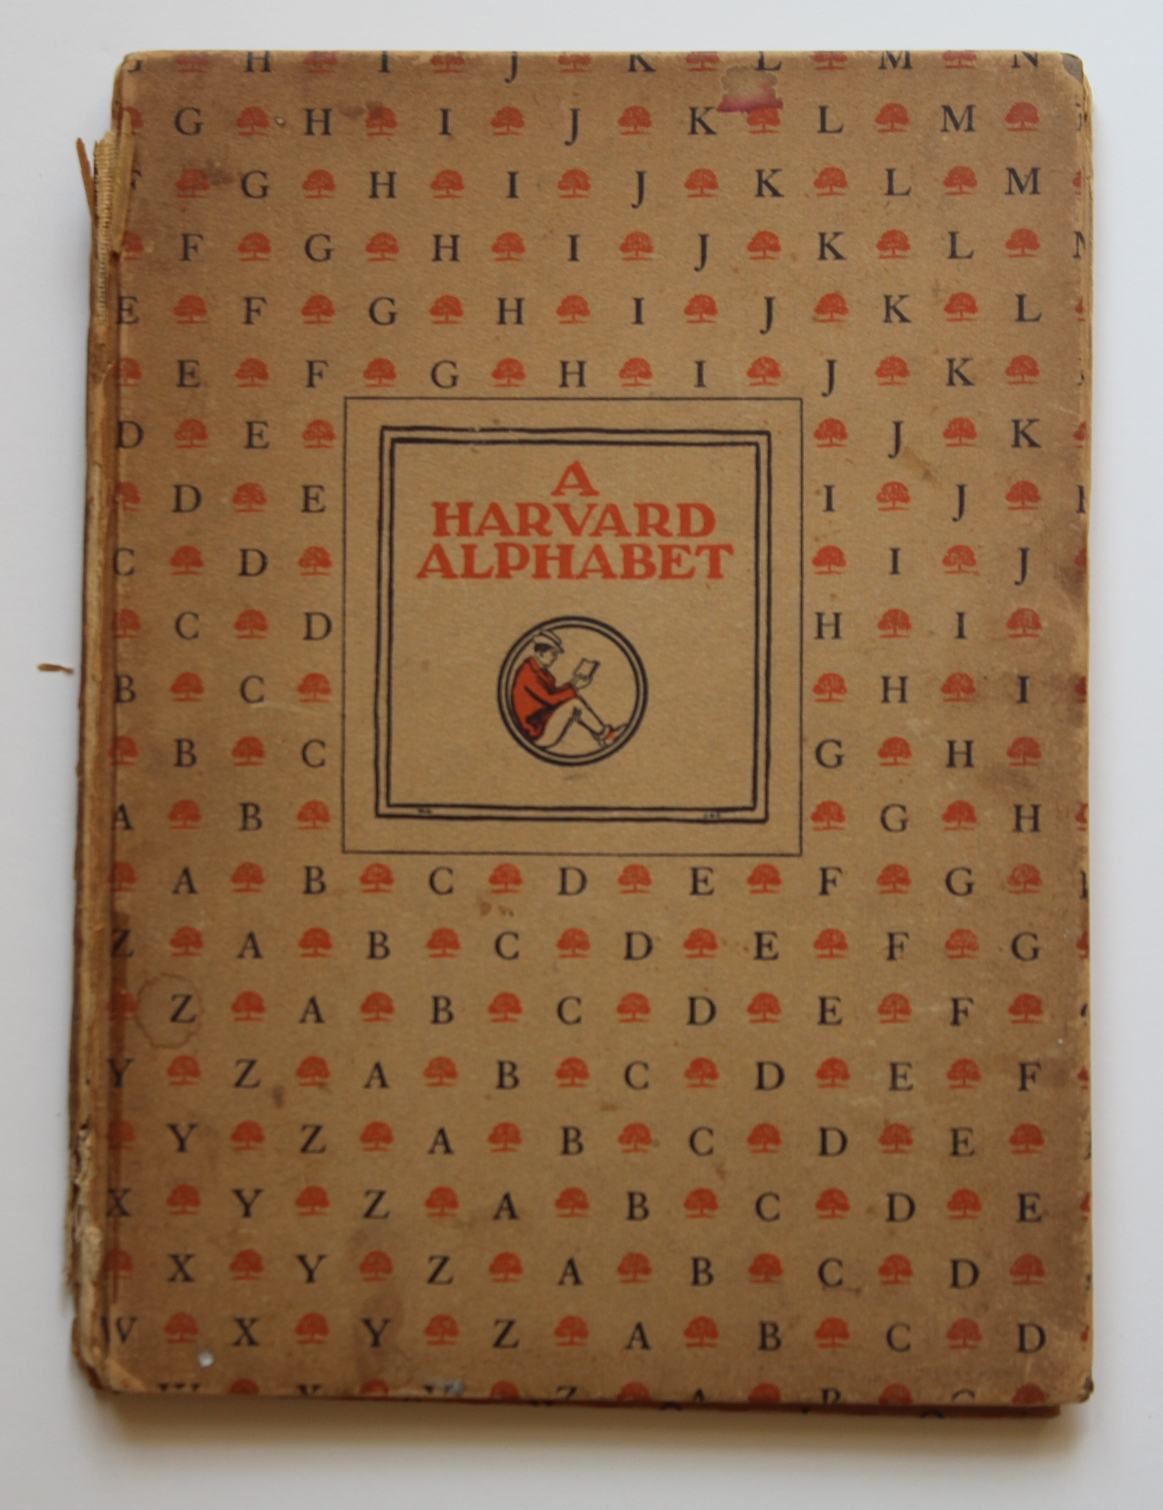 7f4e715e We recently discovered a delightful old book that brings to life Harvard at  the turn of the 20th century. A Harvard Alphabet : The Verses by W.B.W and  ...